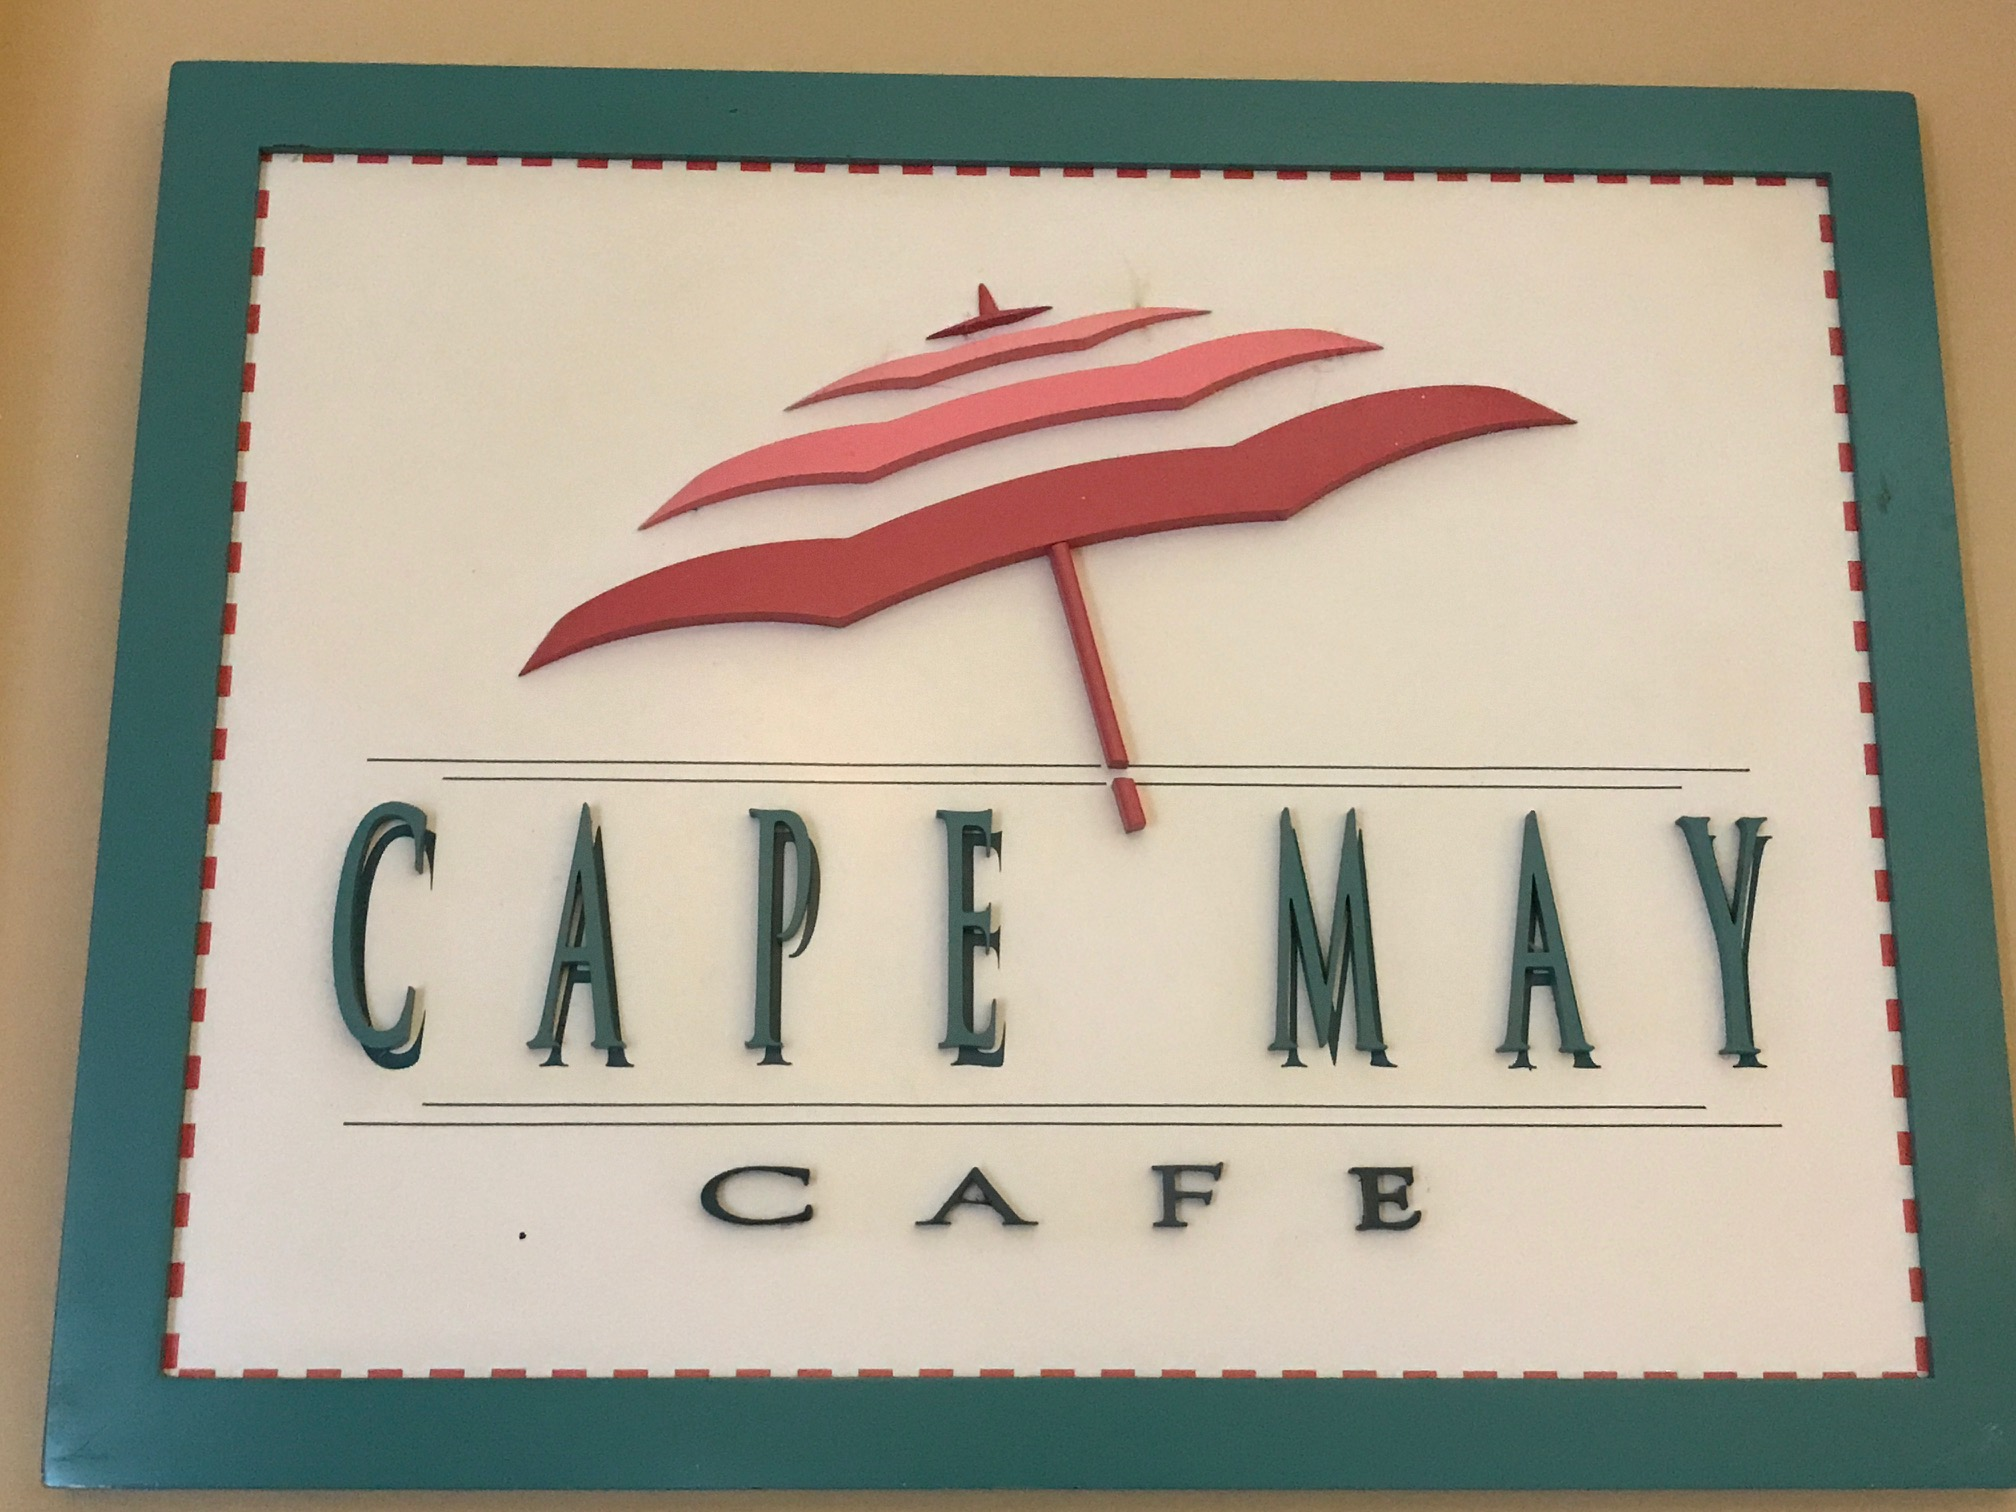 Cape May Cafe sign